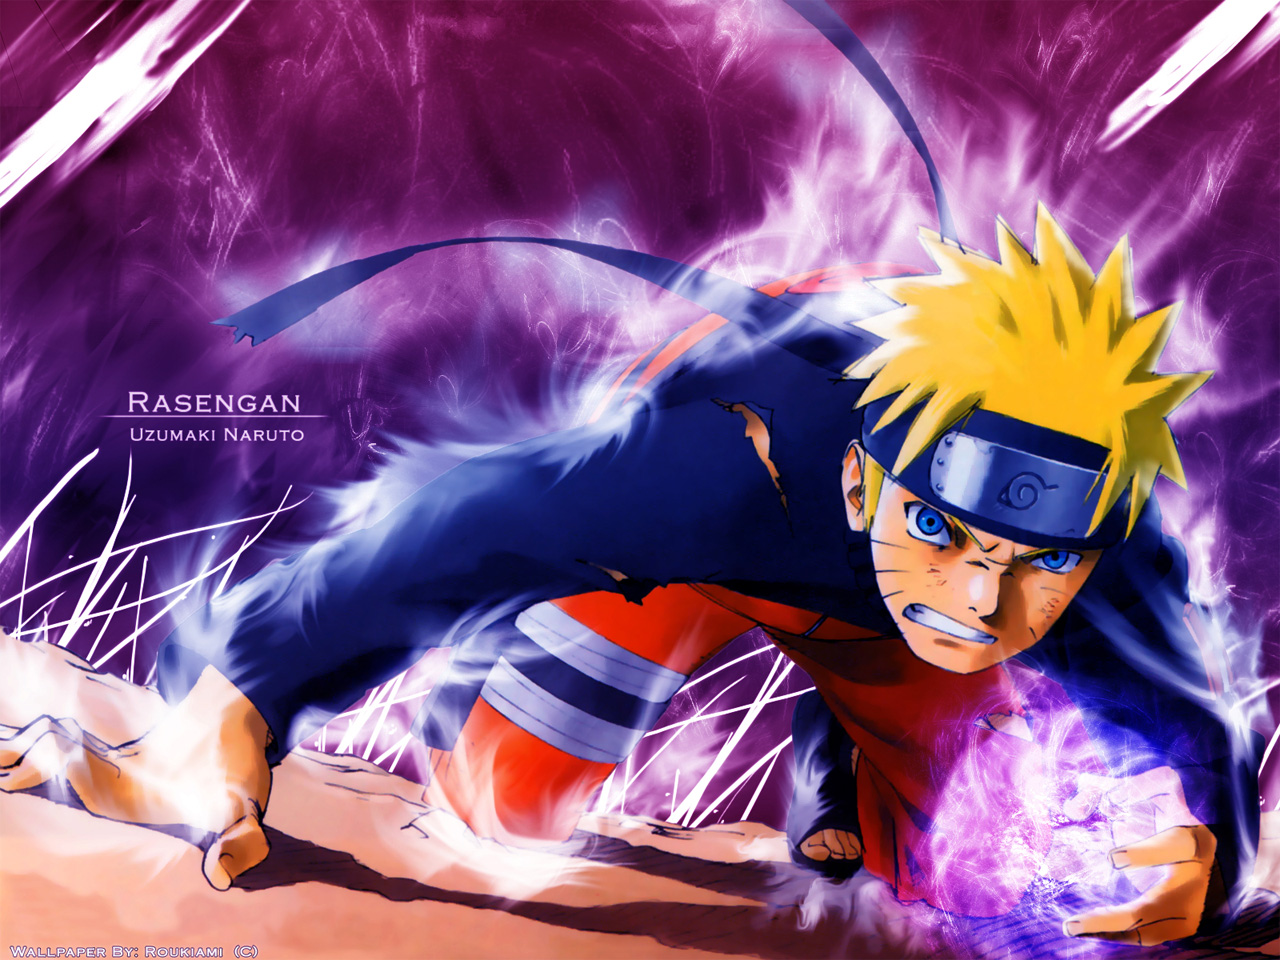 Naruto Rasengan Wallpapers To Use For Your Desktop Computer PSP Or IPhone Resize Fit Needs This Is A Picture Of